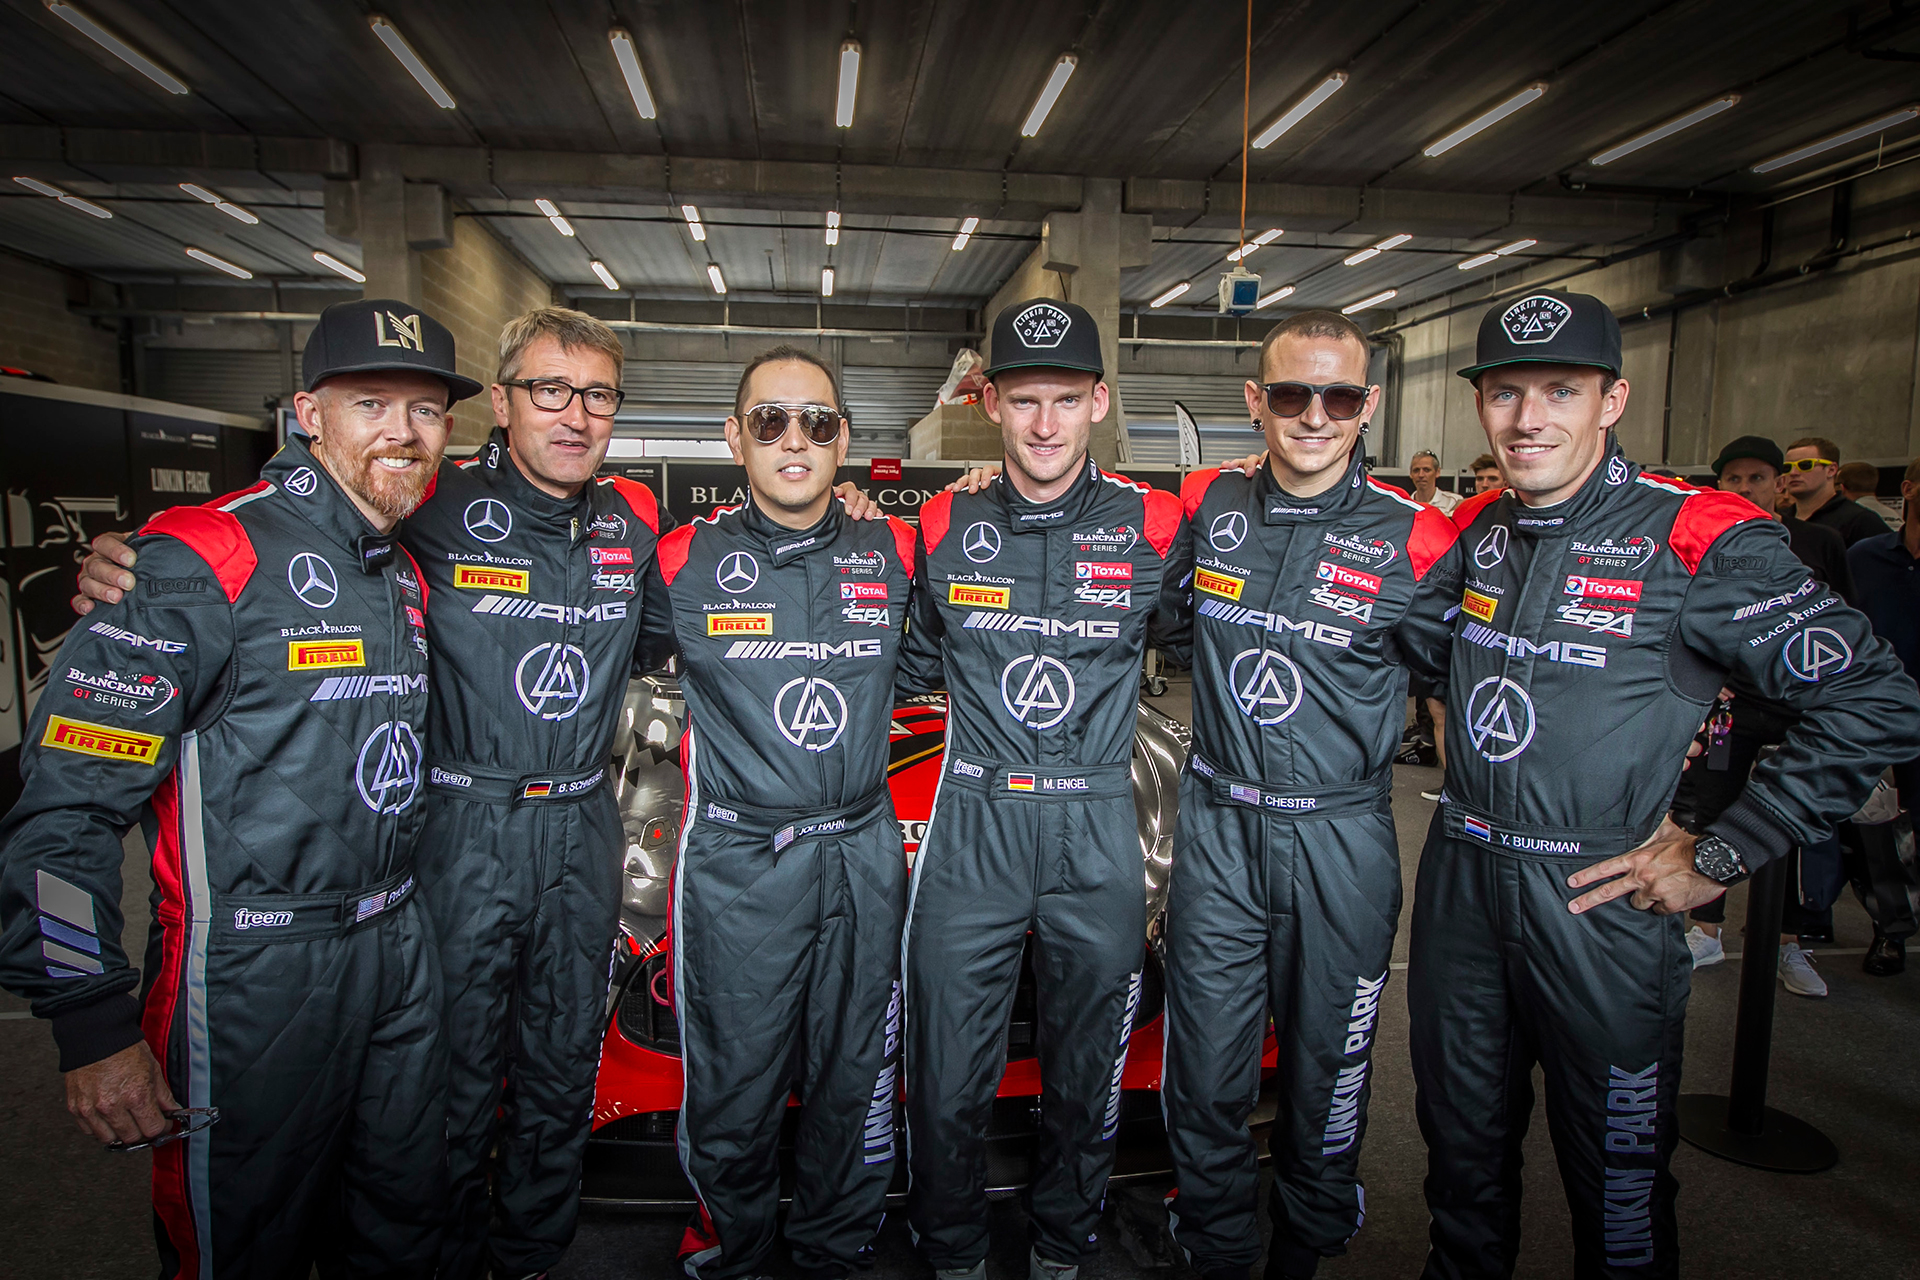 Team Linkin Park - AMG Team Black Falcon - 24 hours race Spa 2016 - Photo Daimler AG